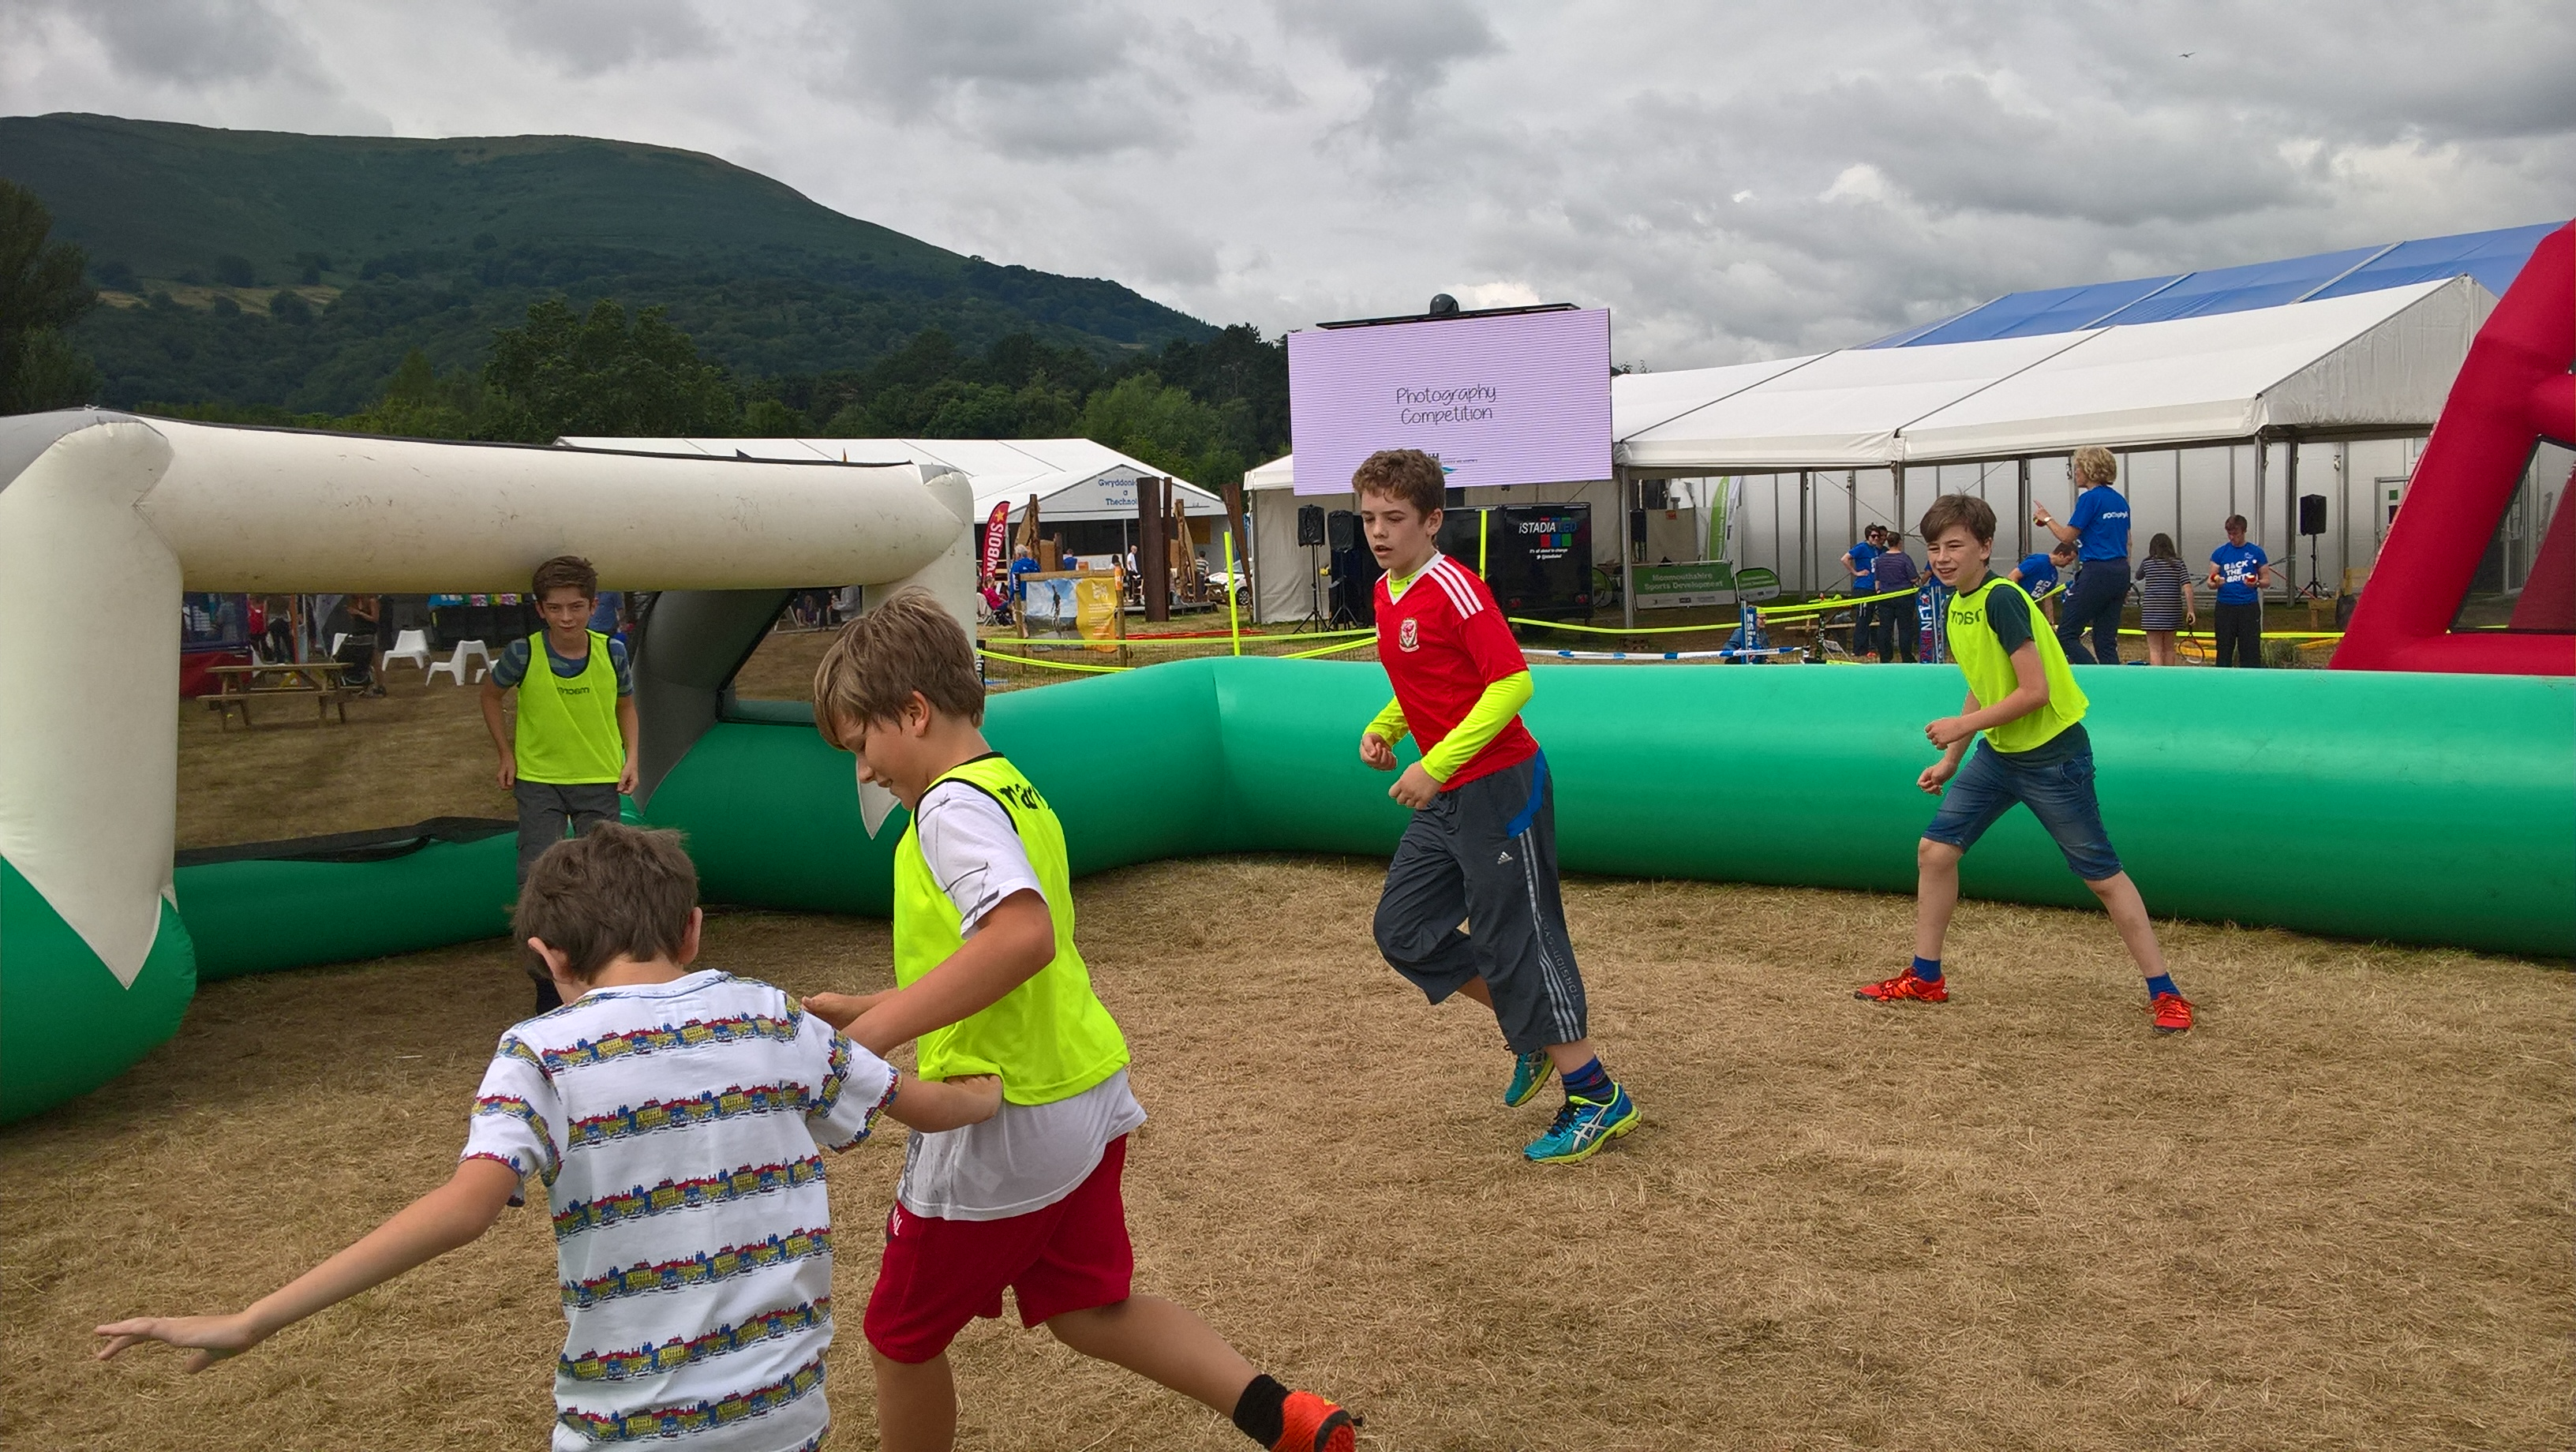 Hundreds of excited children queue up to play football at Eisteddfod 2016